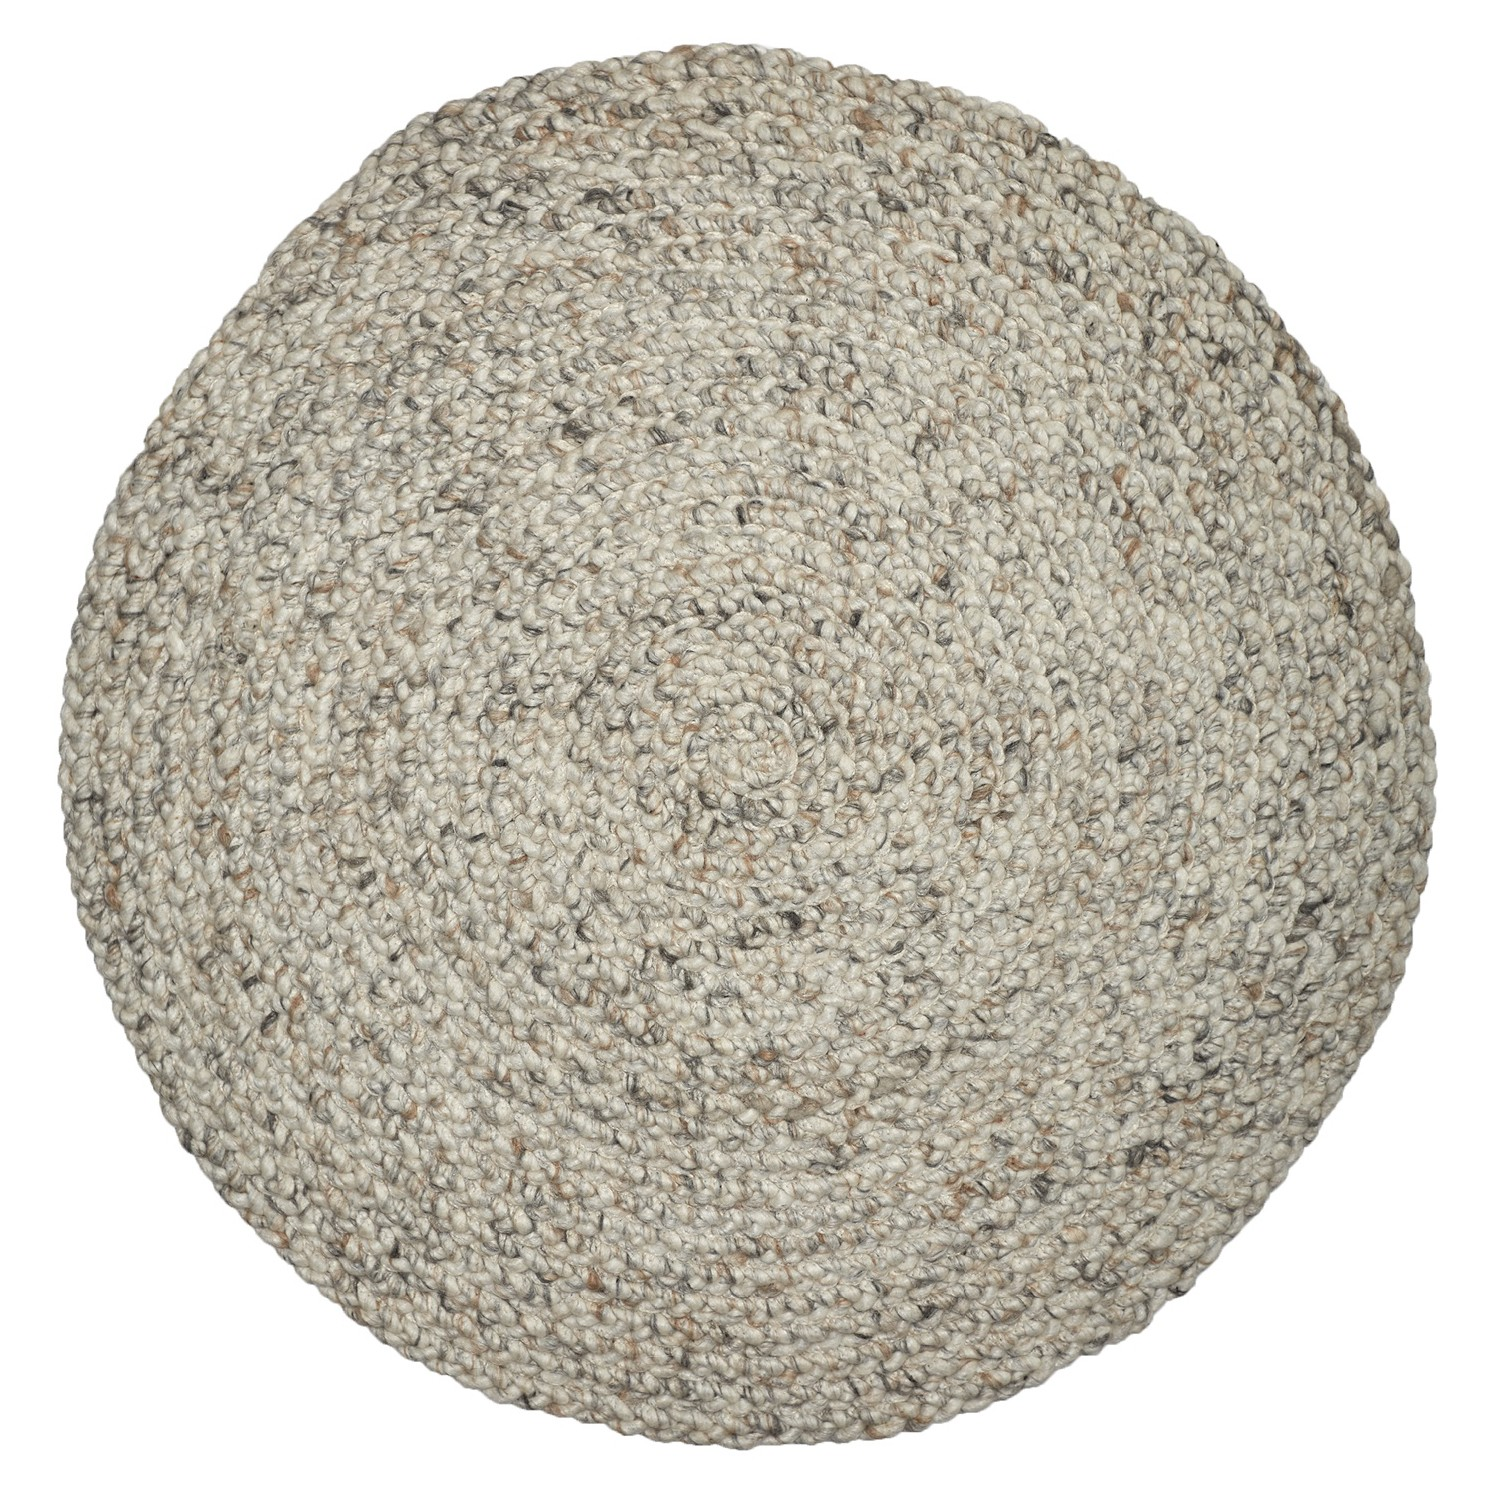 Plait Handwoven Round Wool Rug, 150cm, Natural